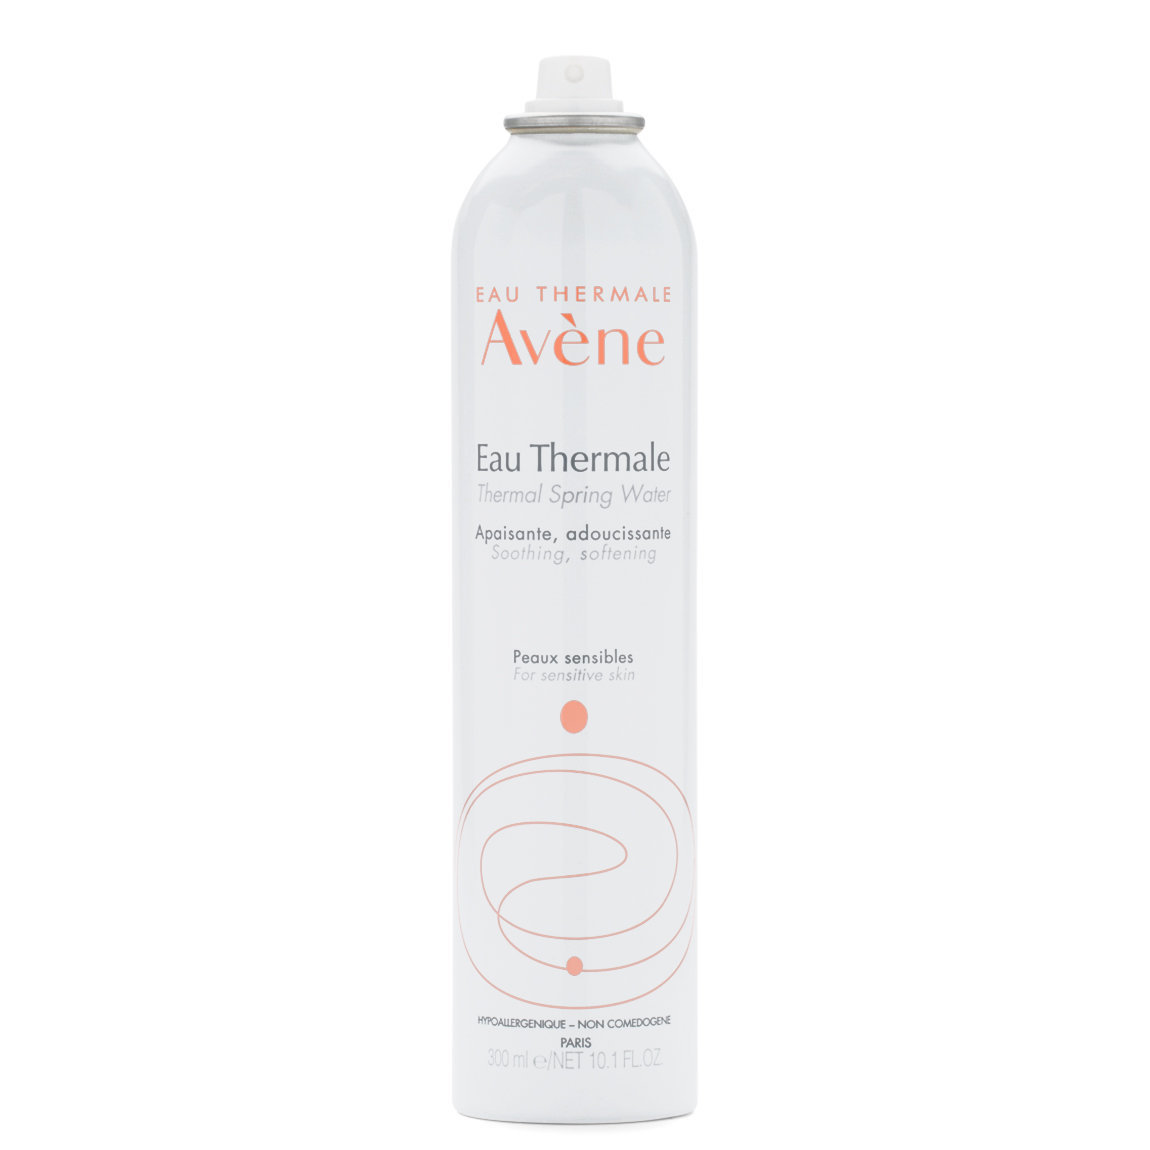 Eau Thermale Avène Thermal Spring Water Spray 300 ml alternative view 1.